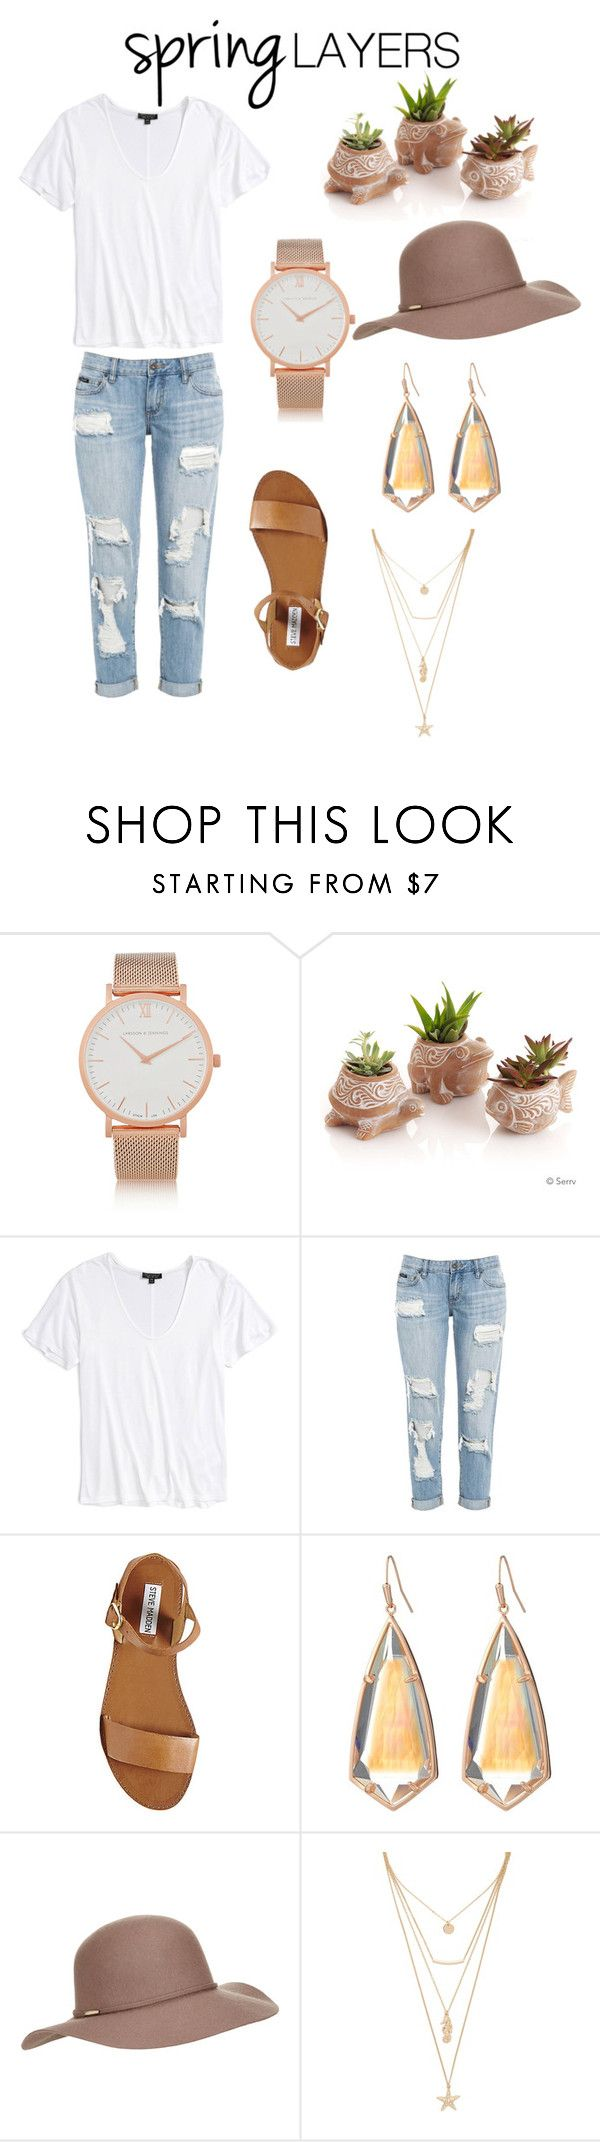 """""""Untitled #44"""" by karimereynoso on Polyvore featuring Larsson & Jennings, Topshop, Steve Madden, Kendra Scott, Accessorize and Forever 21"""